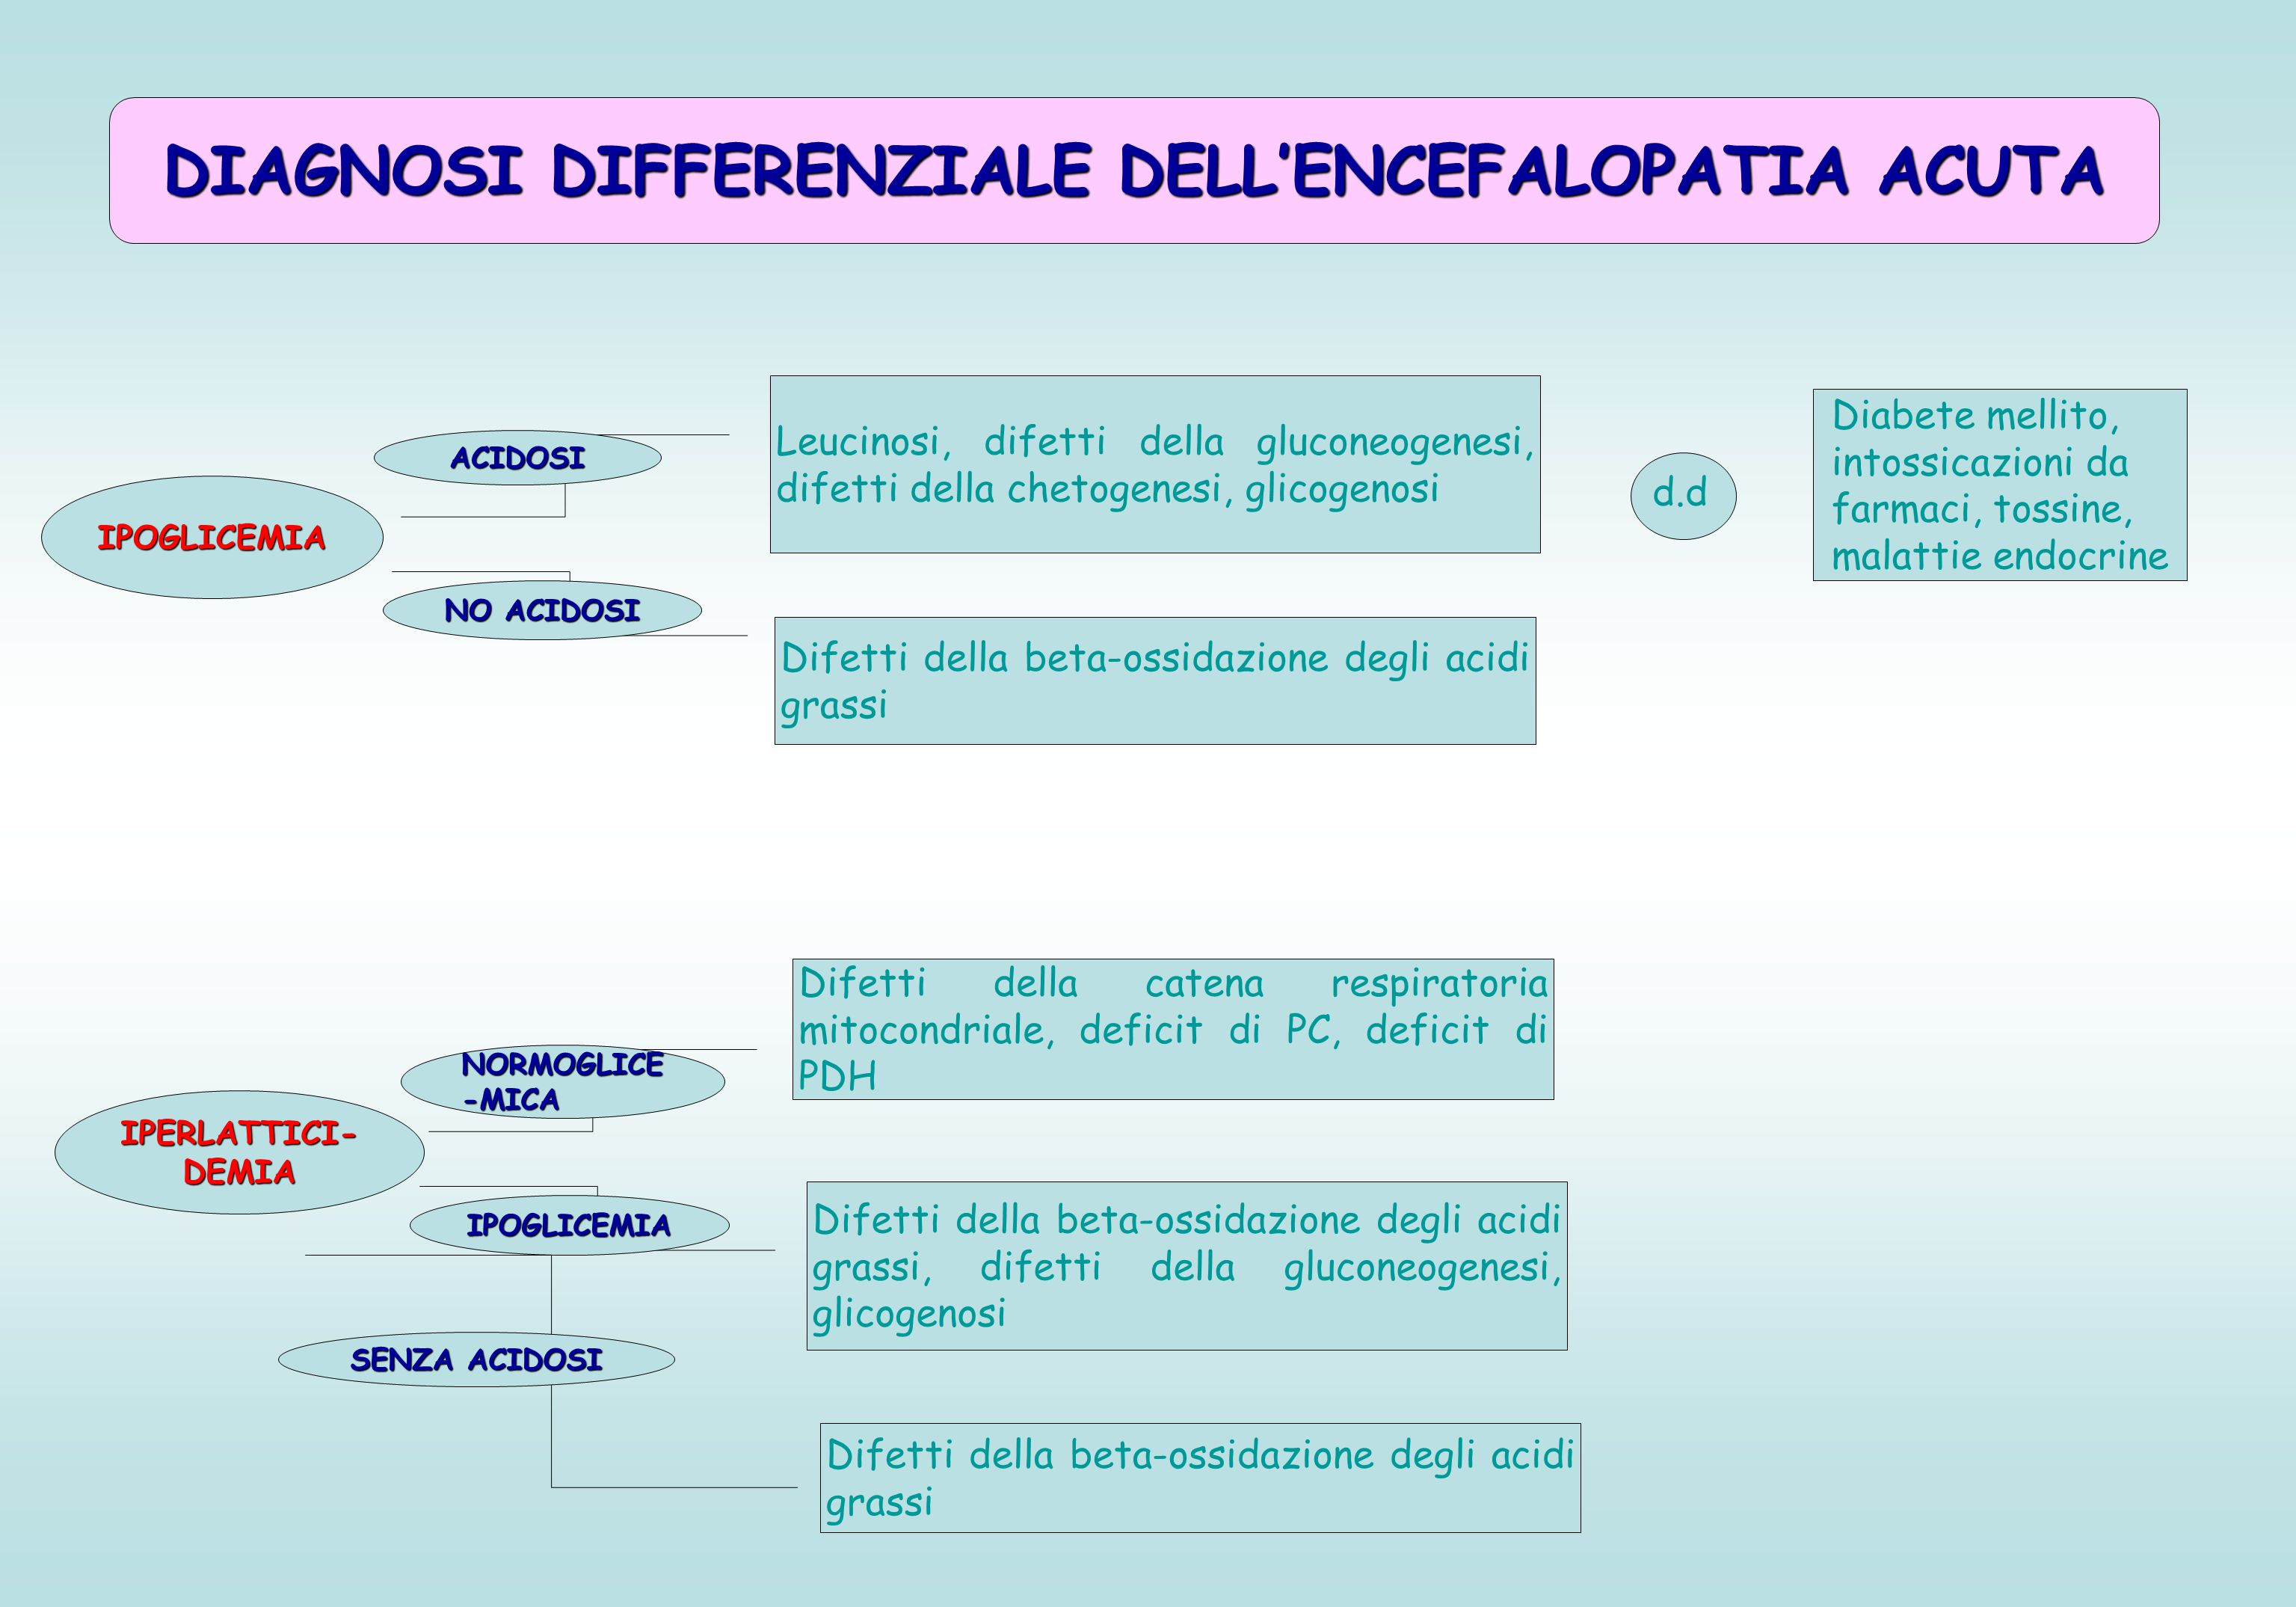 DIAGNOSI DIFFERENZIALE DELL'ENCEFALOPATIA ACUTA